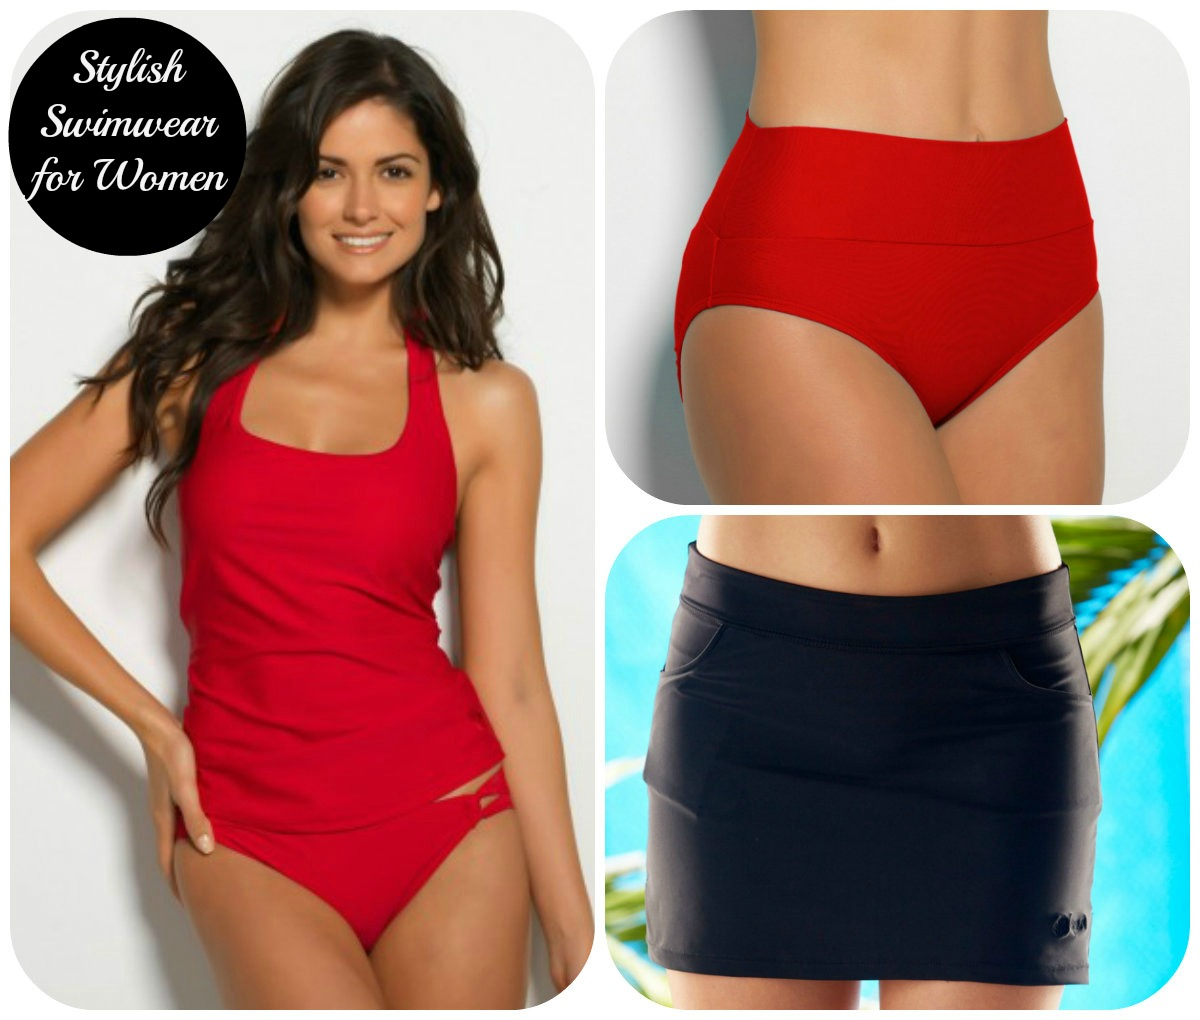 c1ca805c72 Spring Fashion Event: Hapari Swimwear for Women $100 Gift Card ...